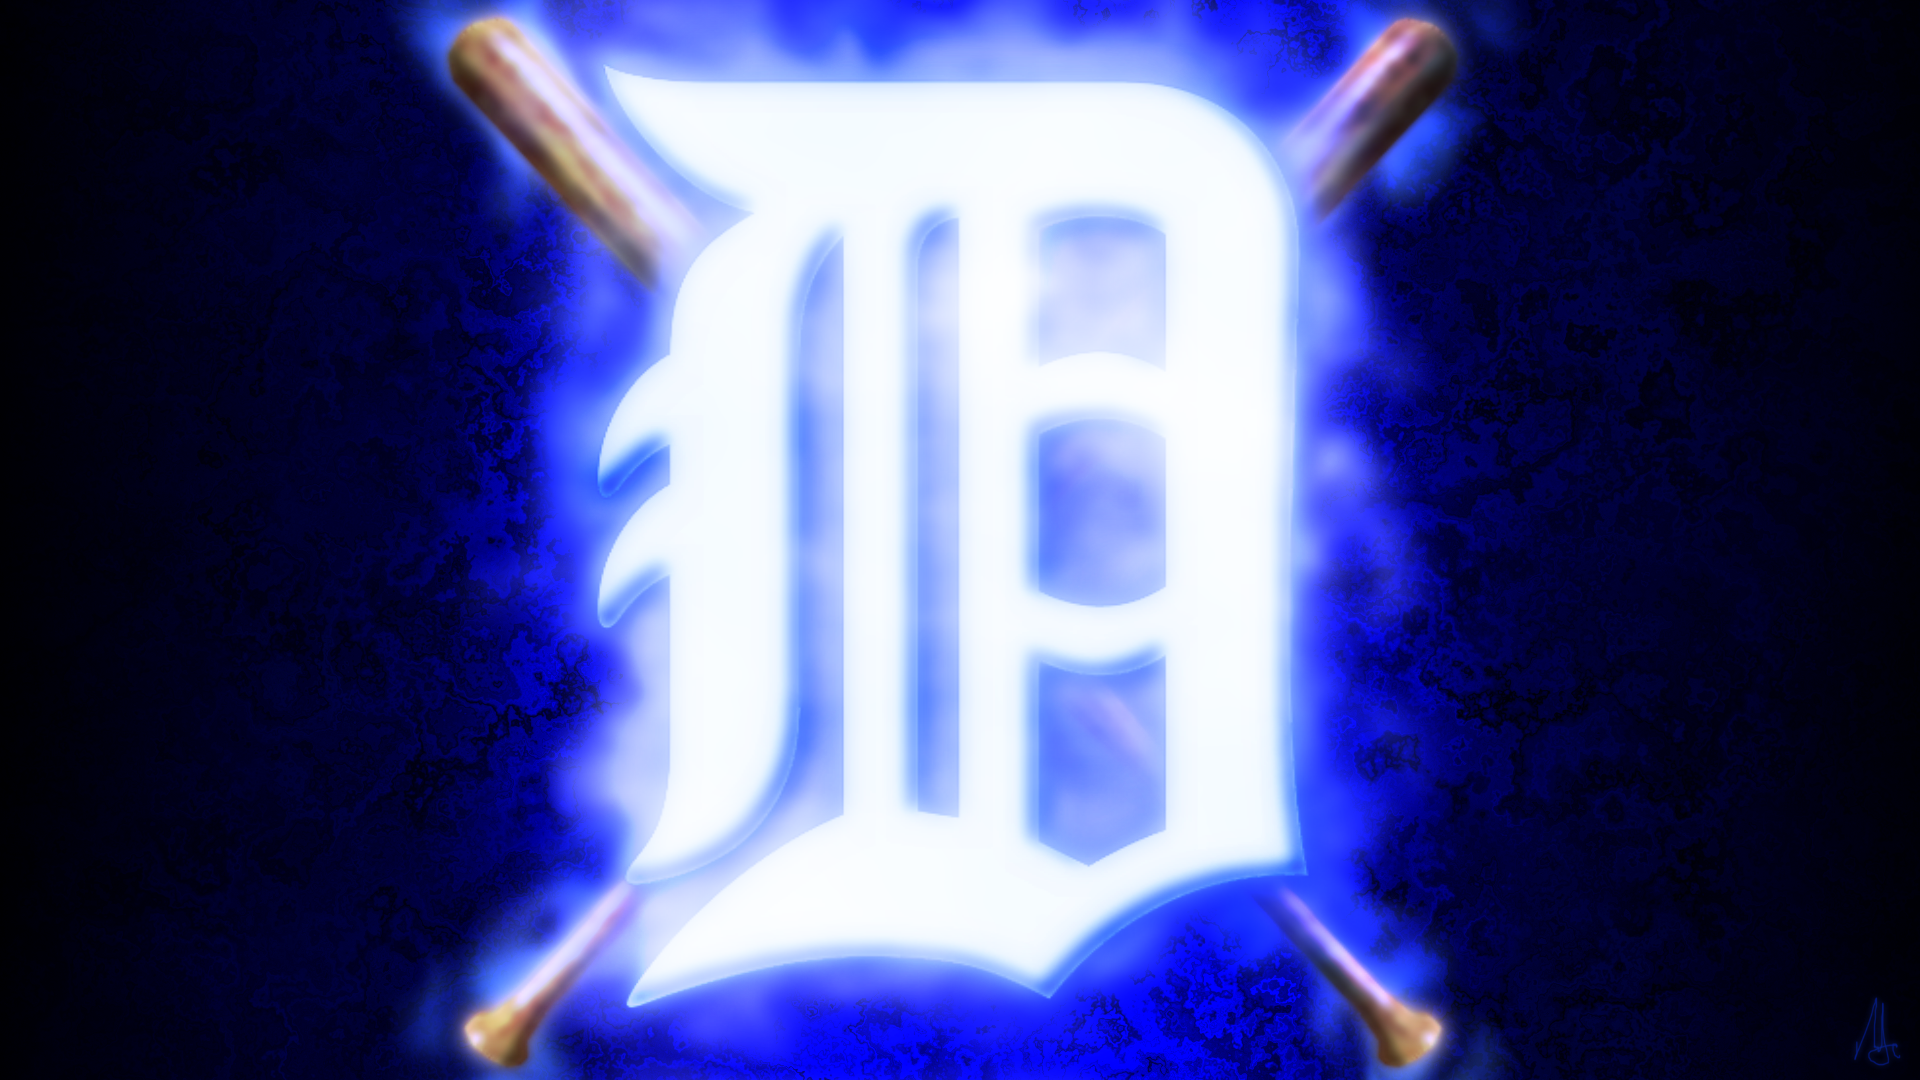 1920x1080 - Detroit Tigers Wallpapers 15